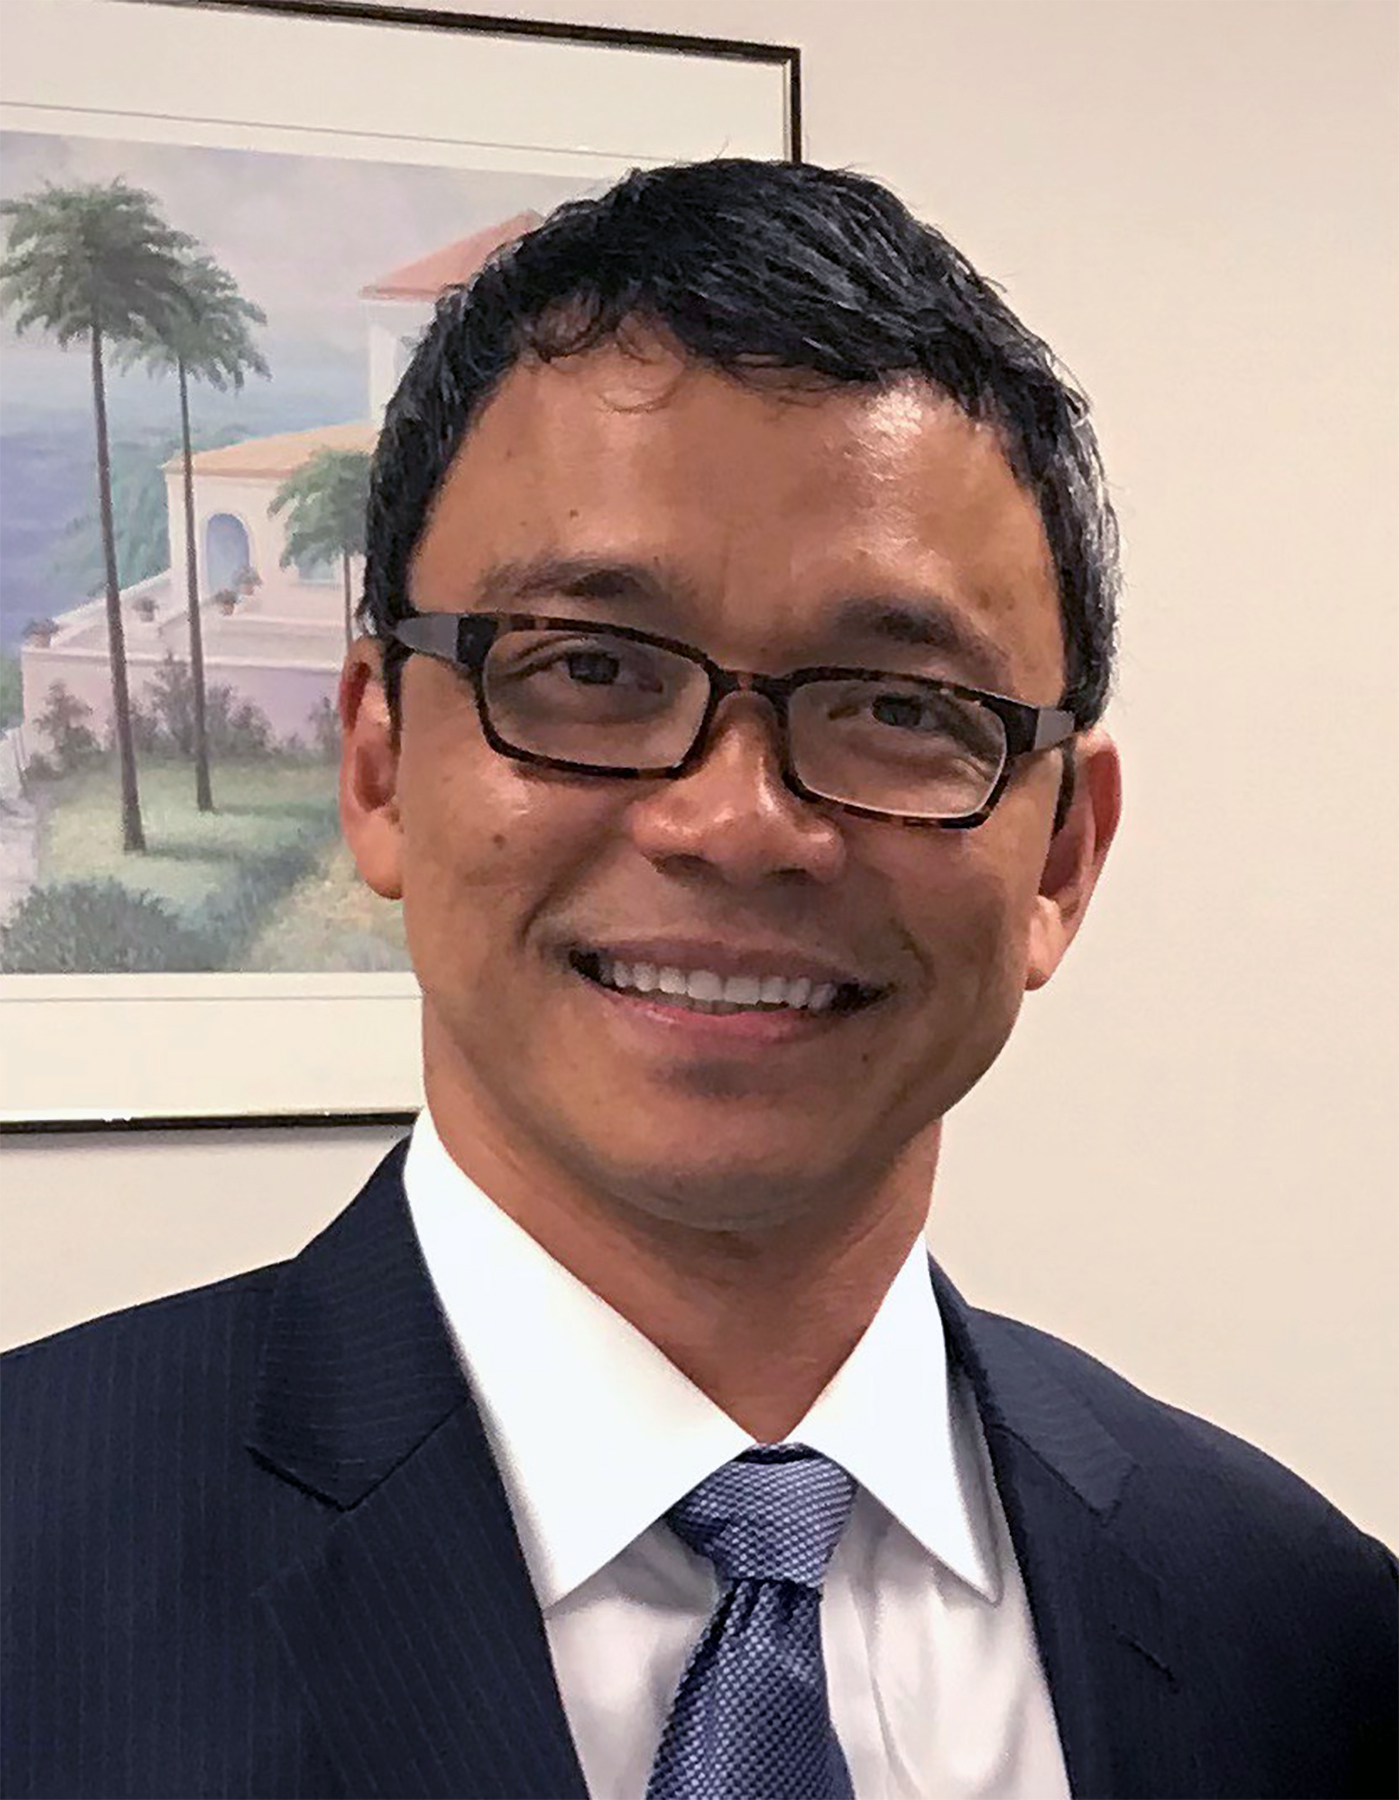 Broward Health Appoints New Chief Medical ficer